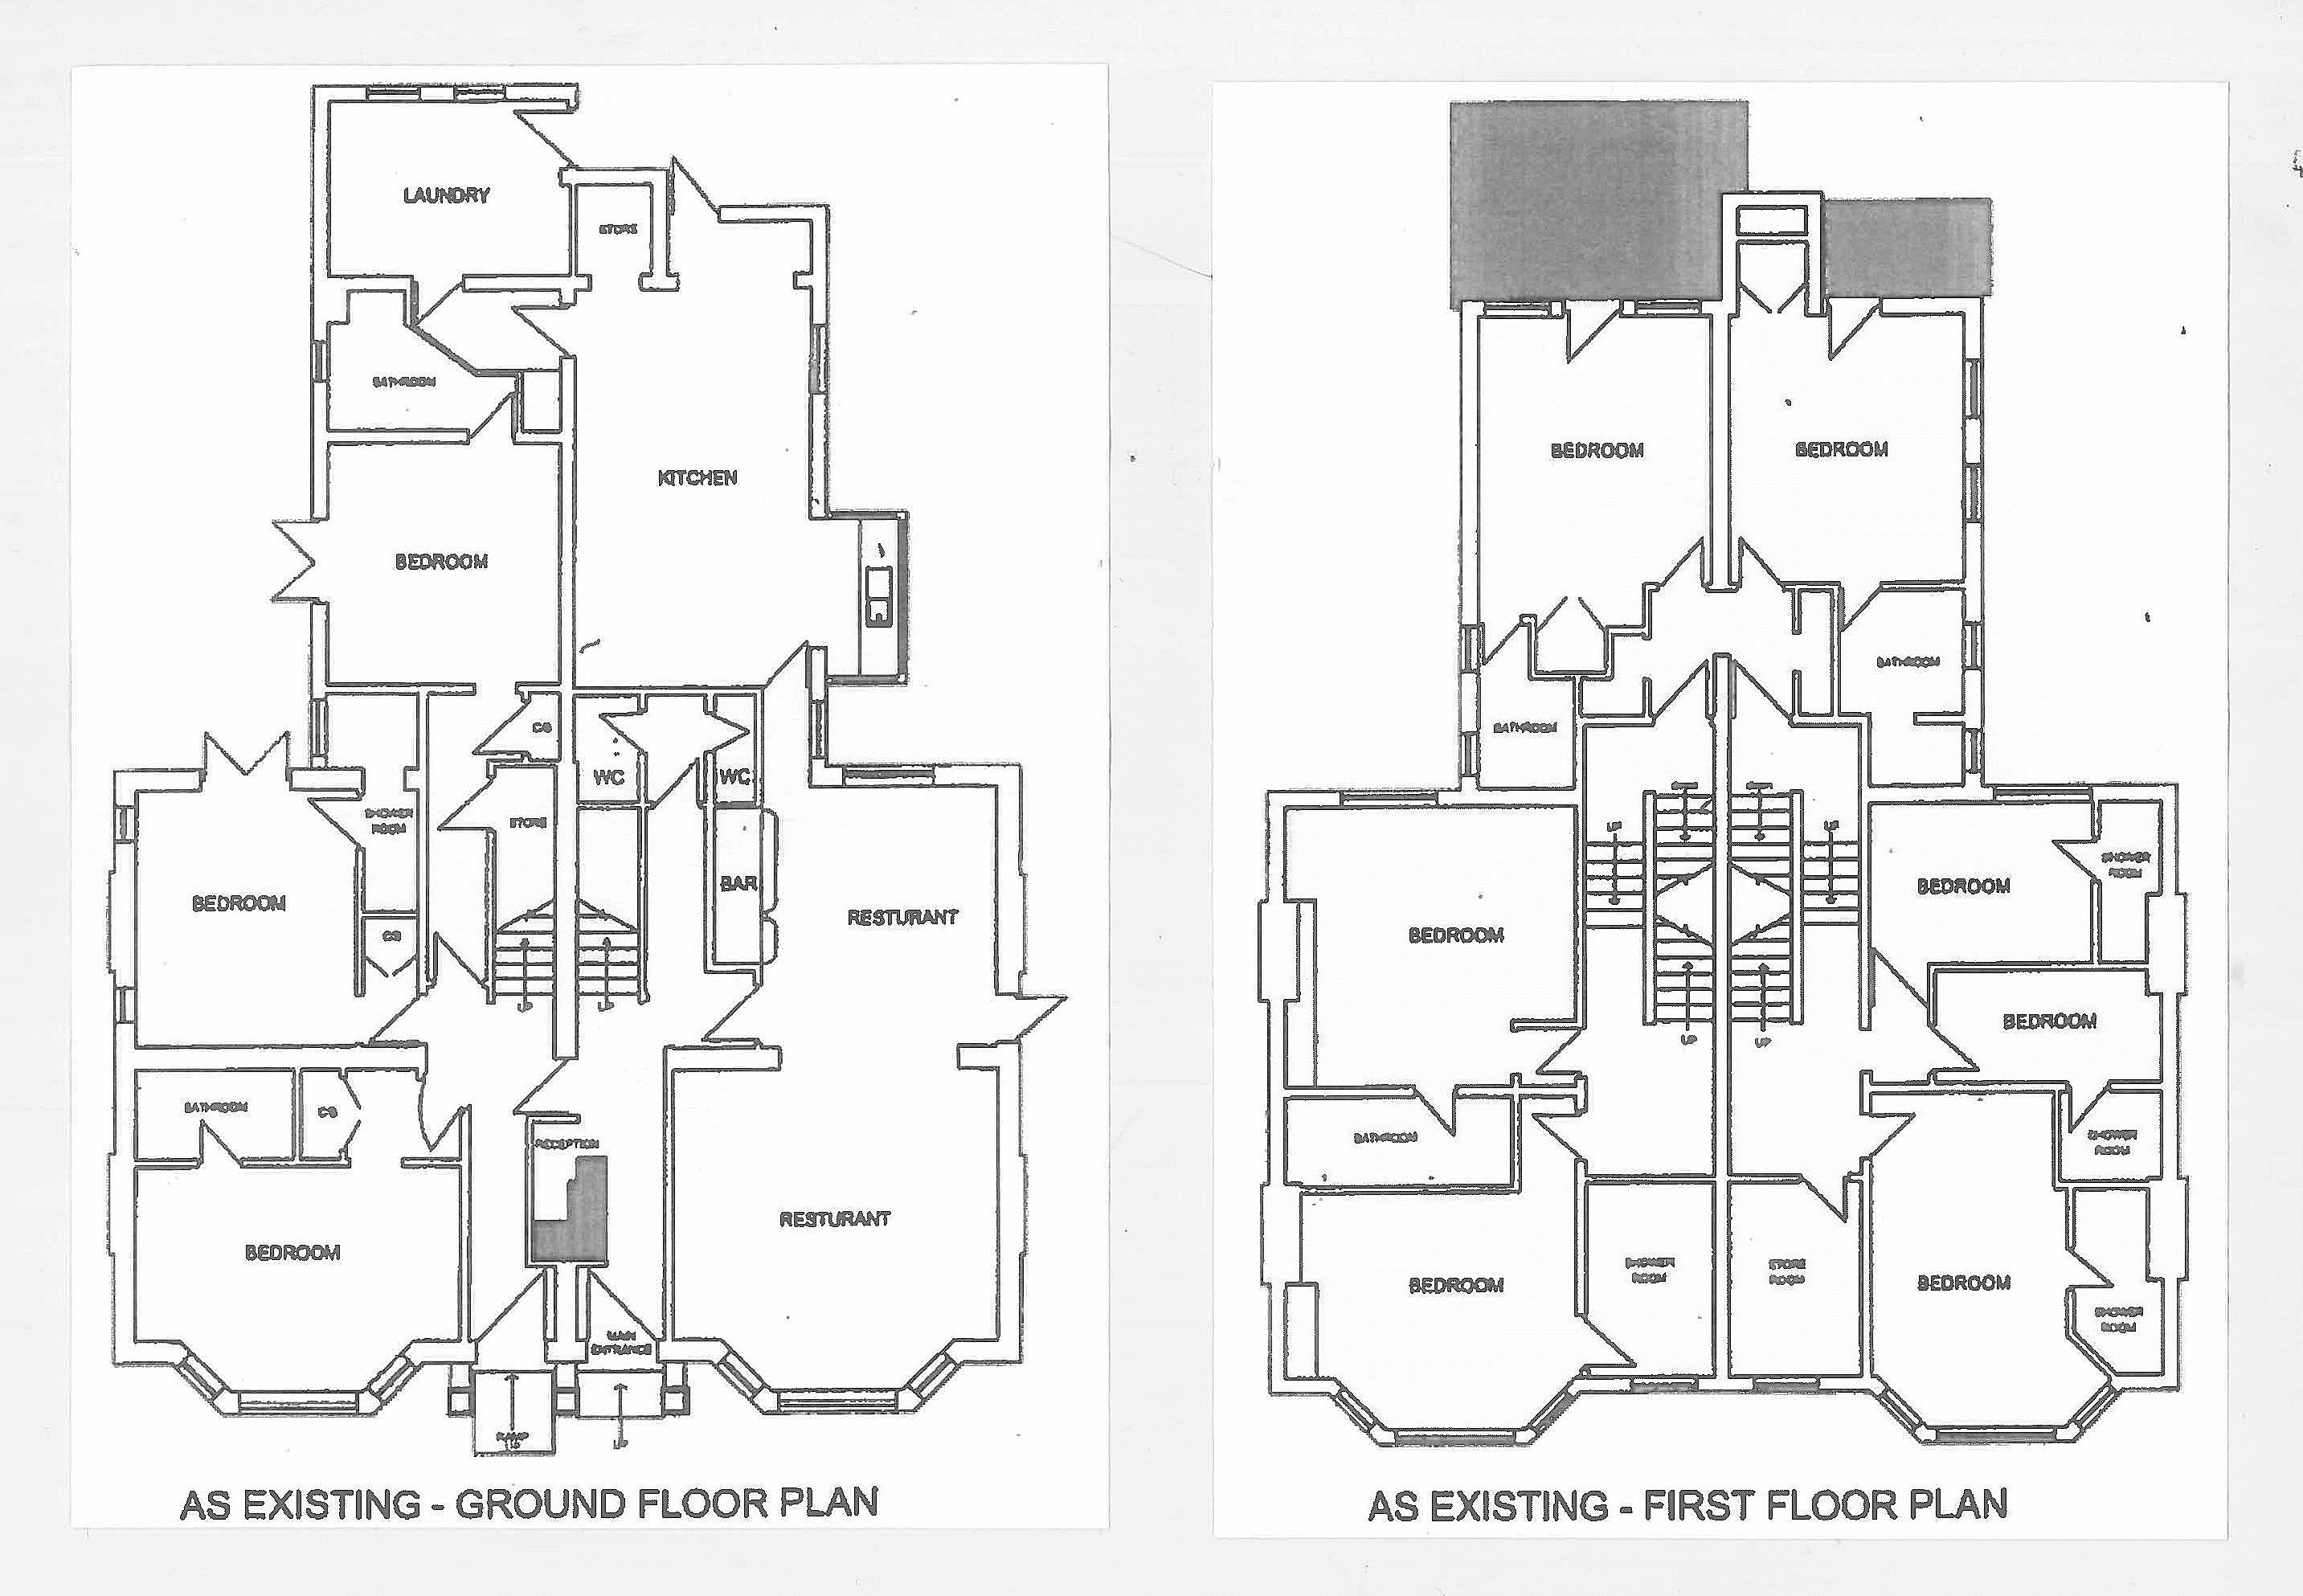 Floor plans for Westbourne Villas, Hove property for sale in Hove, Brighton by Coapt